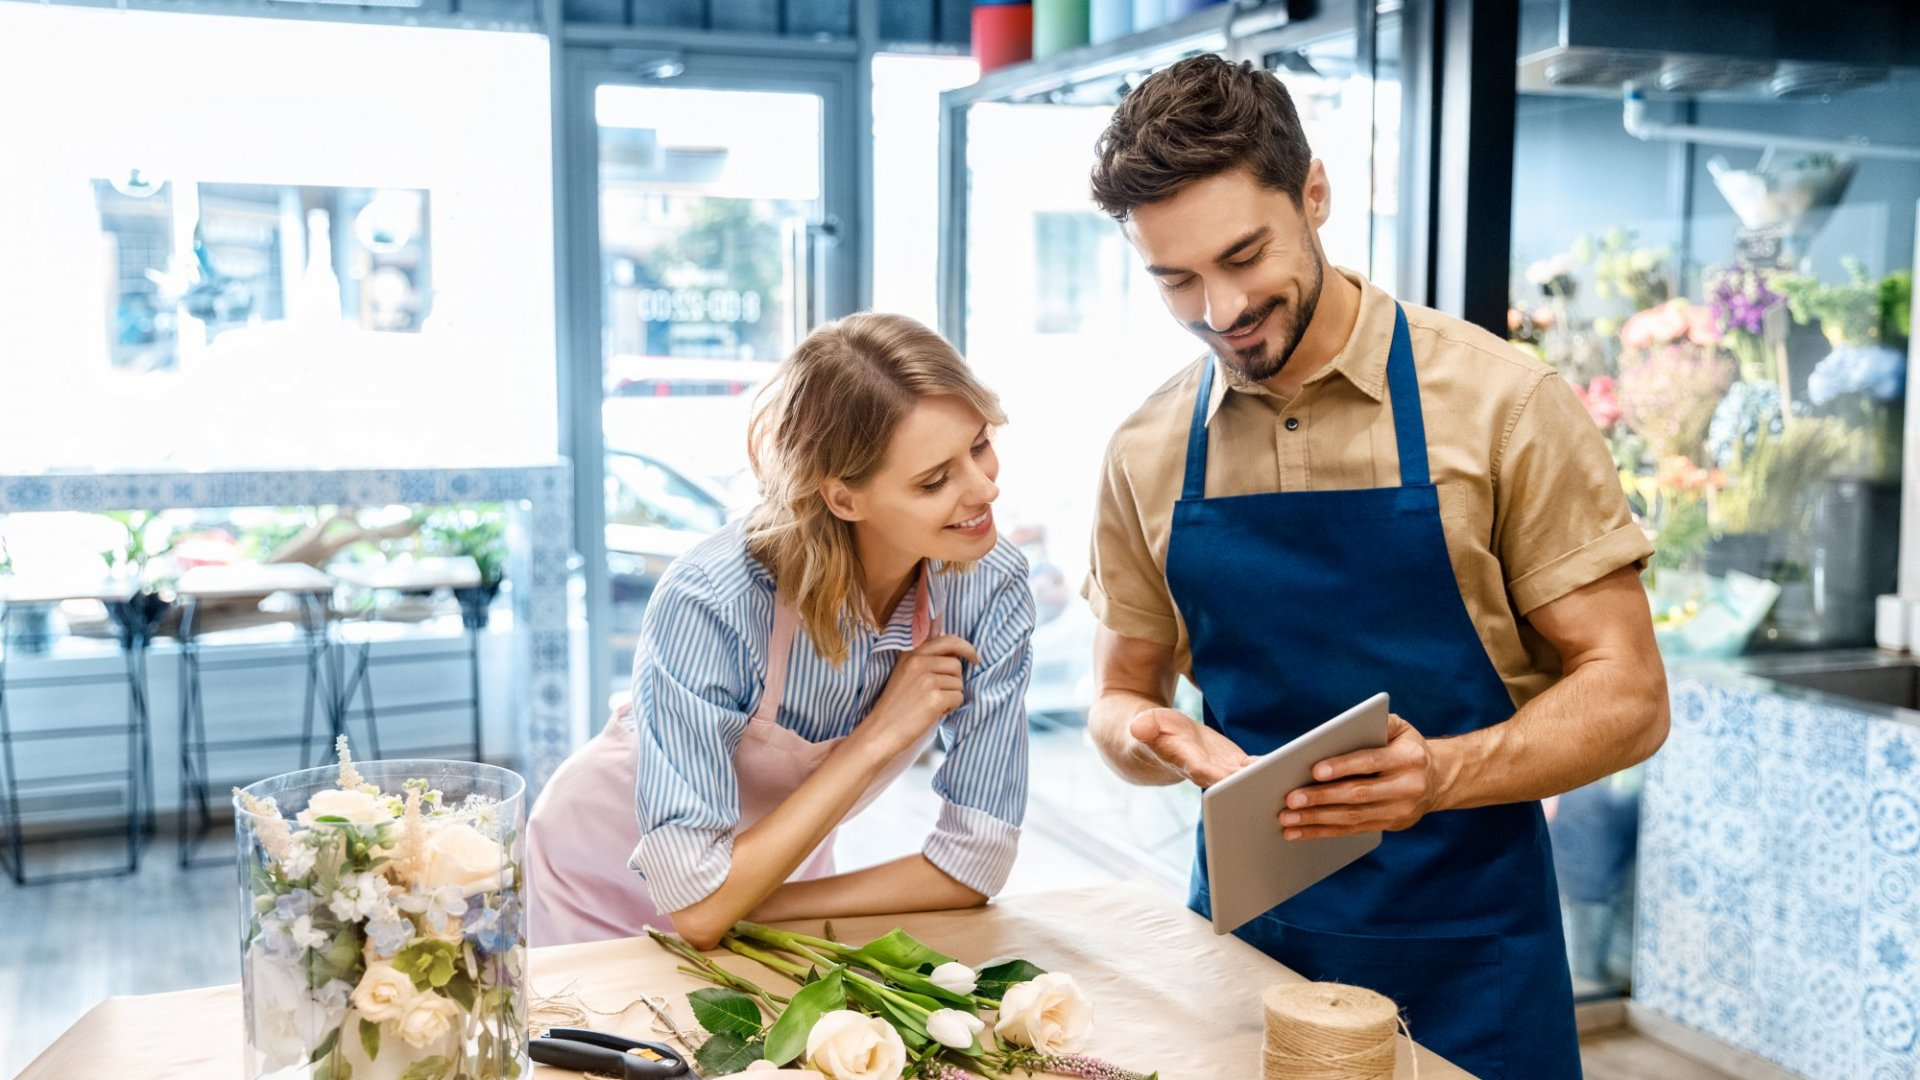 5 Small Business Trends to Leverage in 2020